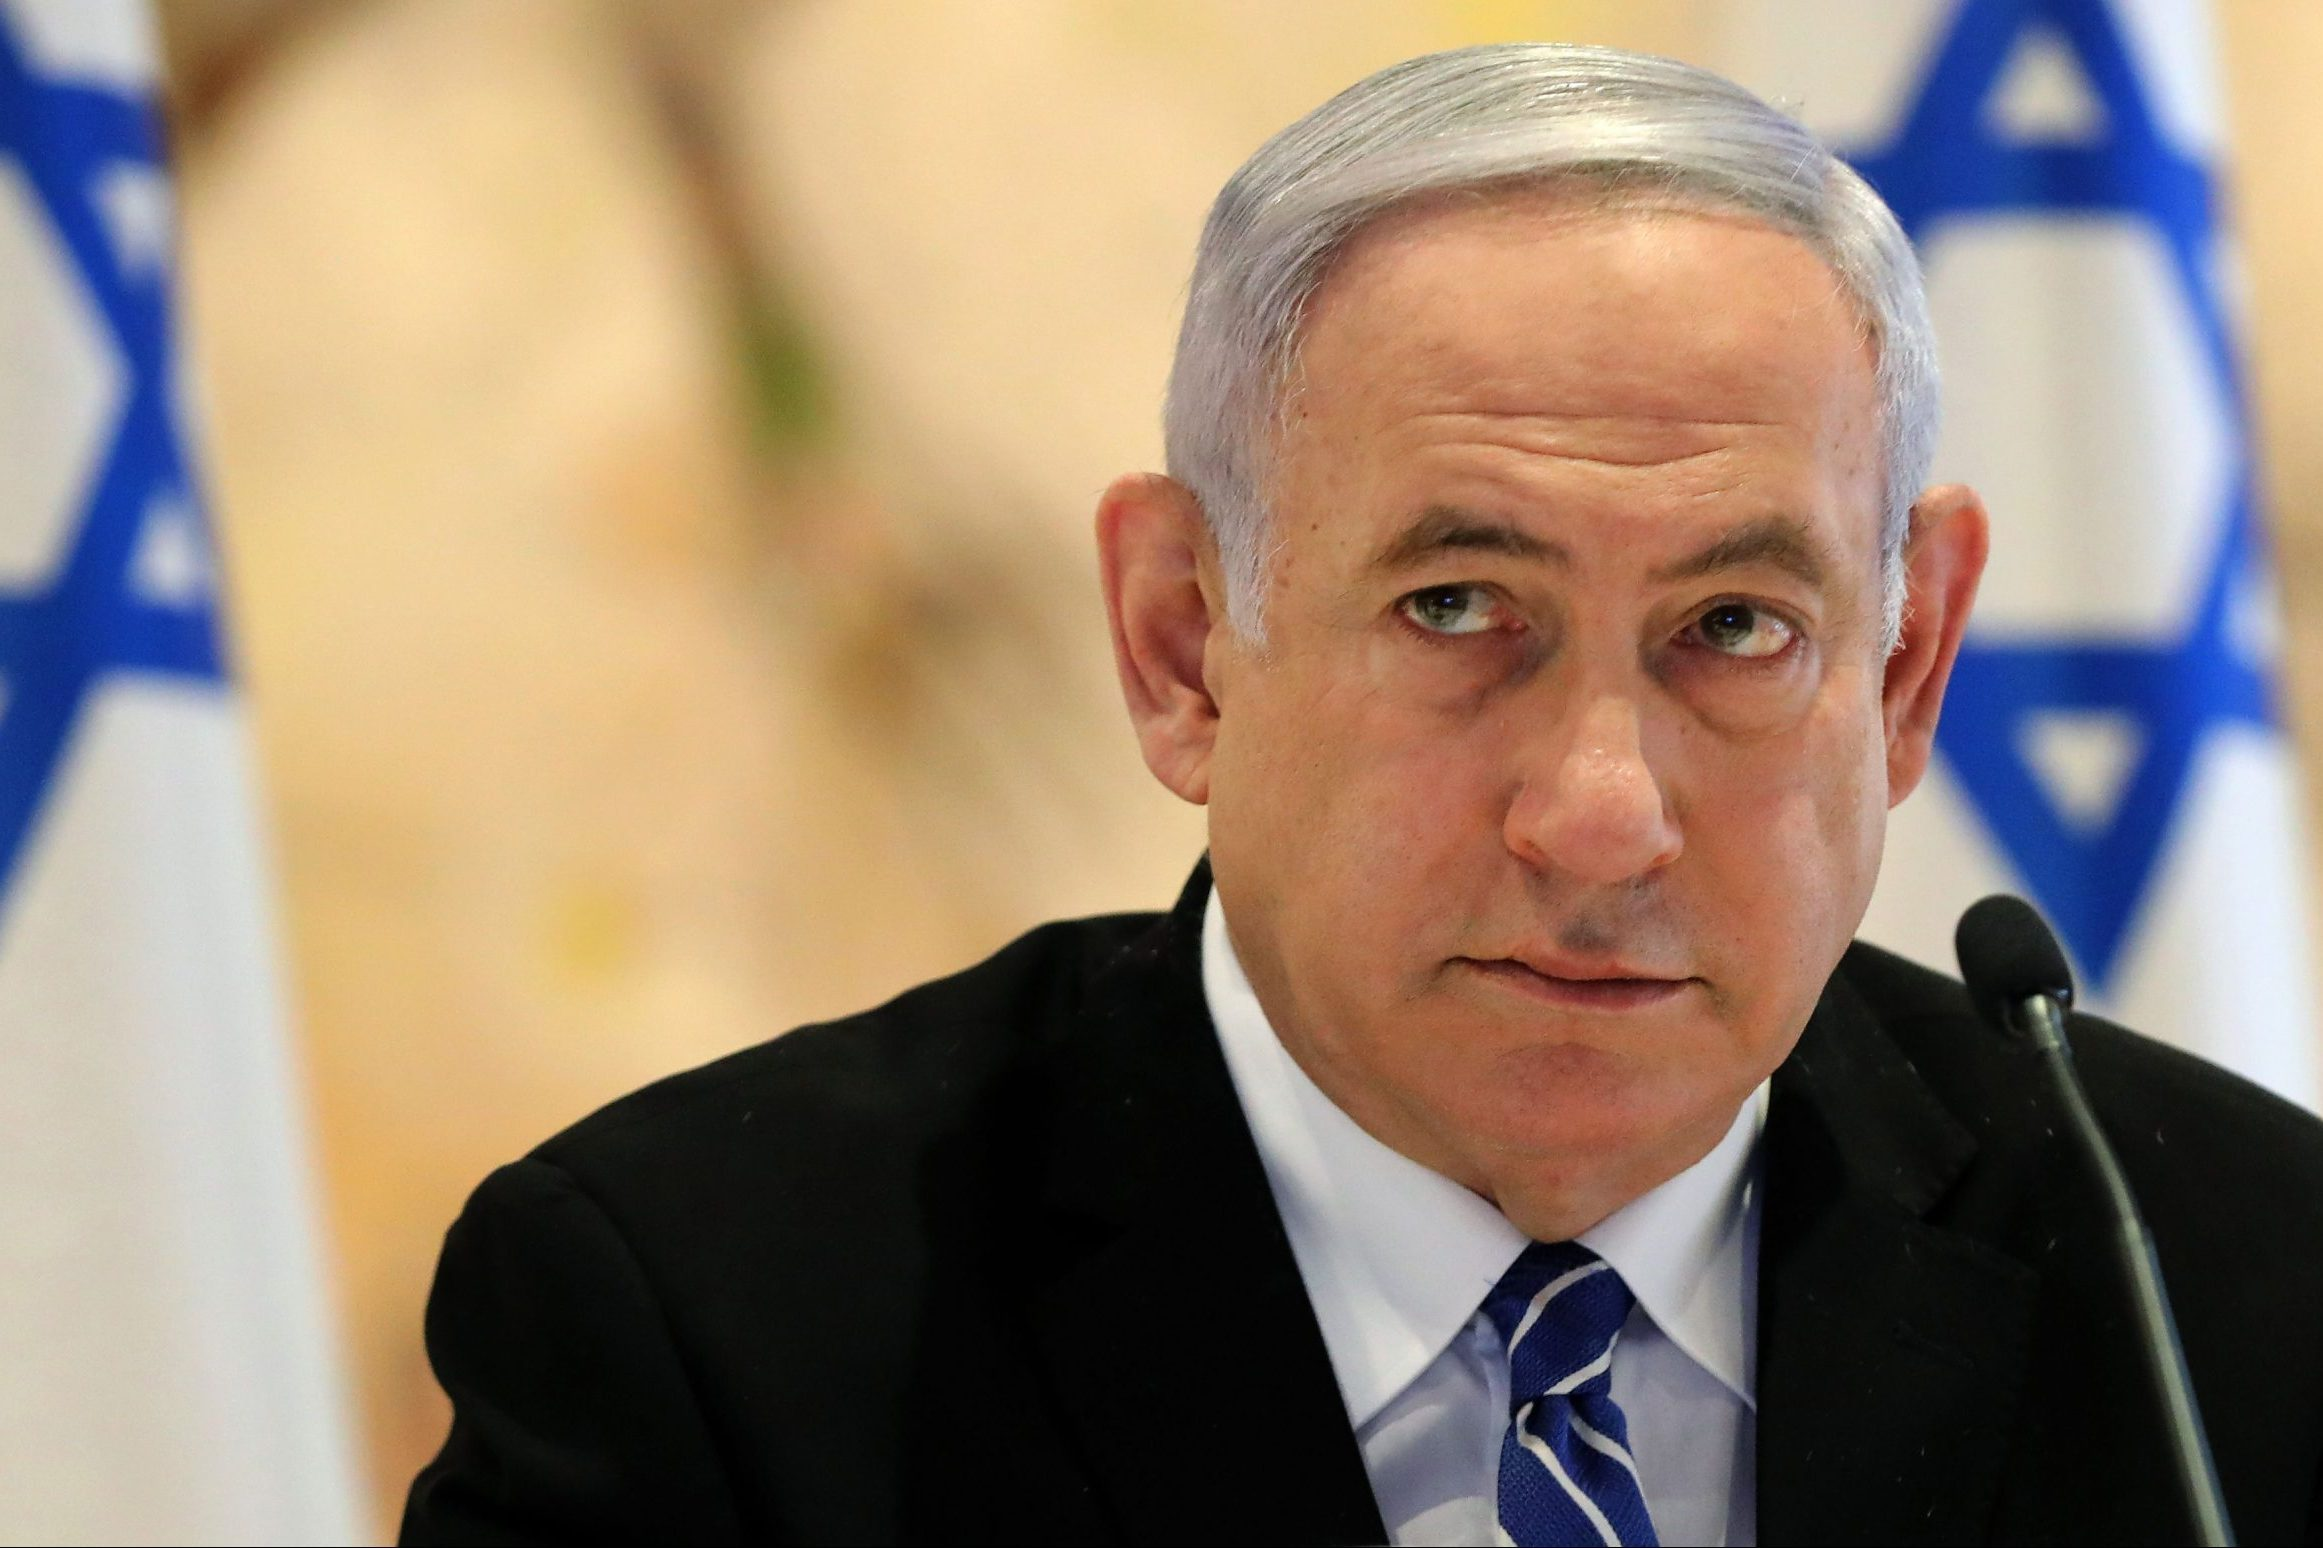 Israeli Prime Minister Benjamin Netanyahu attends a cabinet meeting of the new government at Chagall State Hall in the Knesset (Israeli parliament) in Jerusalem on May 24, 2020.